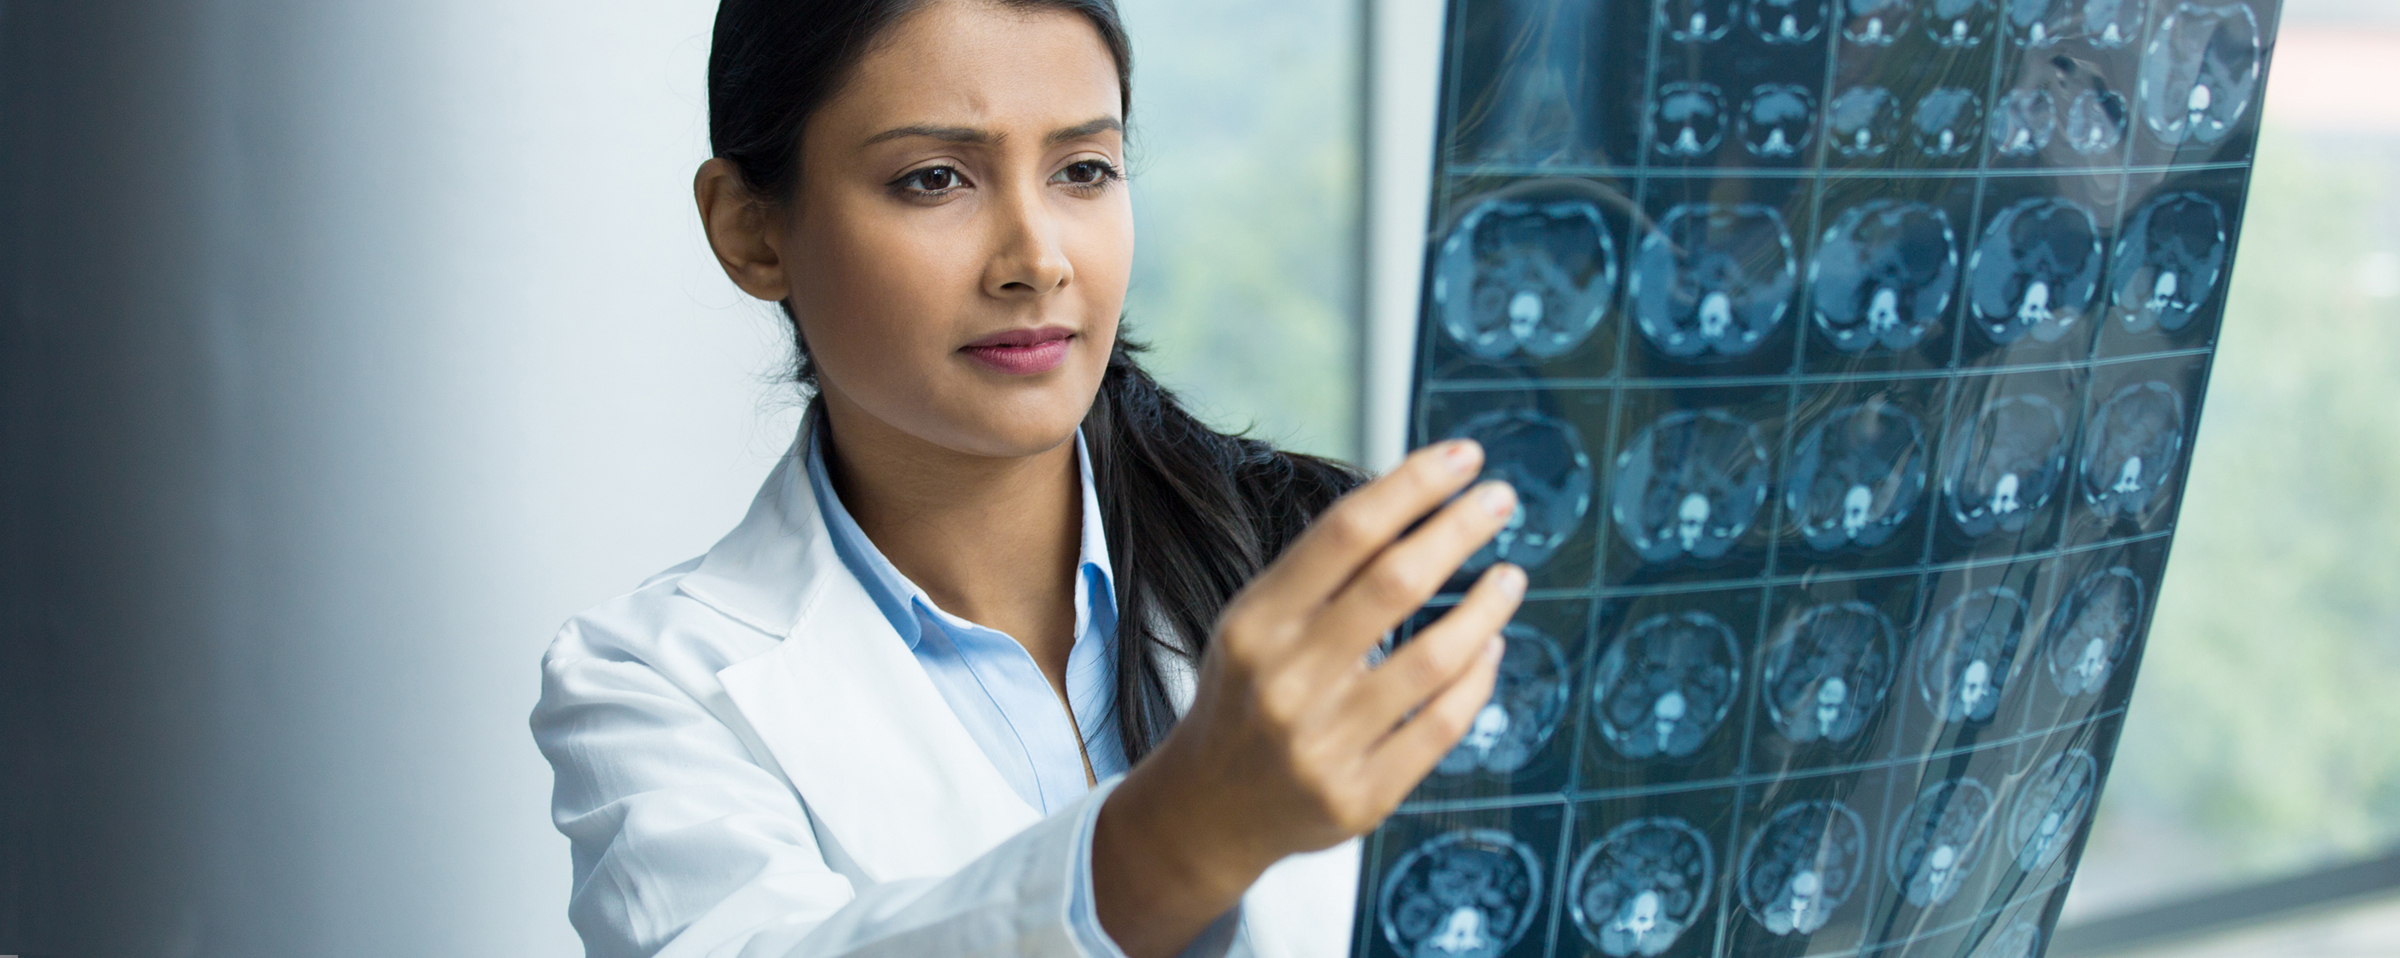 RosmanSearch for Neurologists